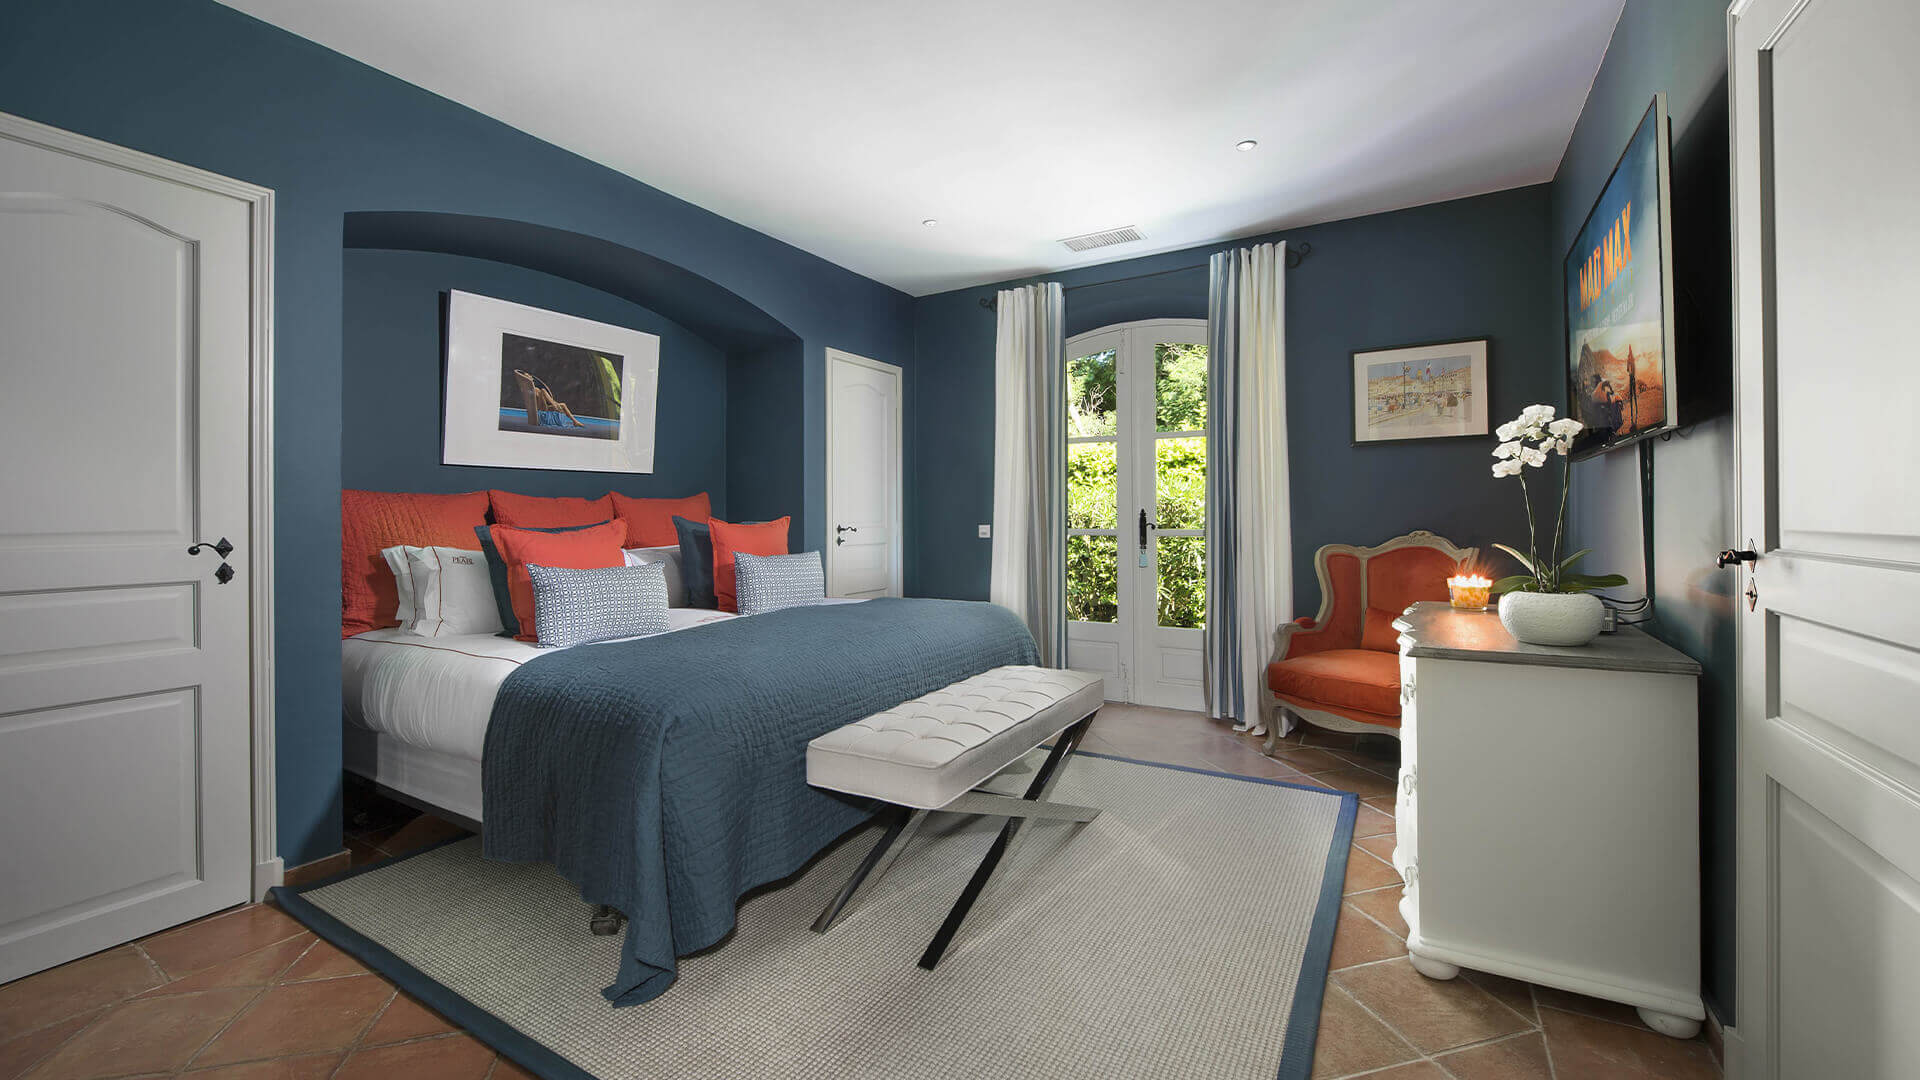 Saint Tropez Villa blue bedroom with red pillows and red chair